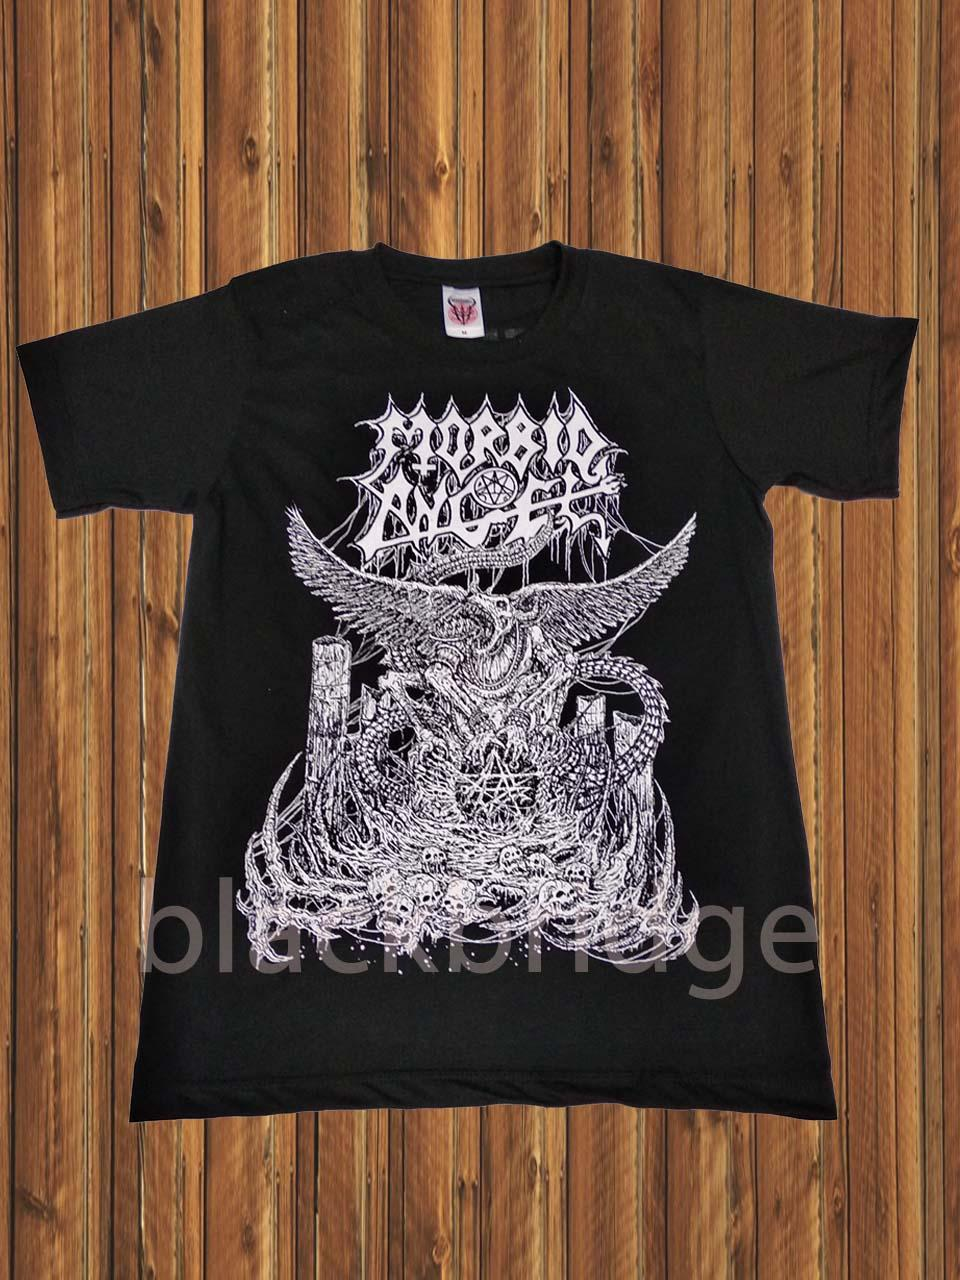 Kaos Pendek / Oblong Rock / Metal / Punk Murah  PRAPATAN REBEL (Size M) - MORBID ANGEL